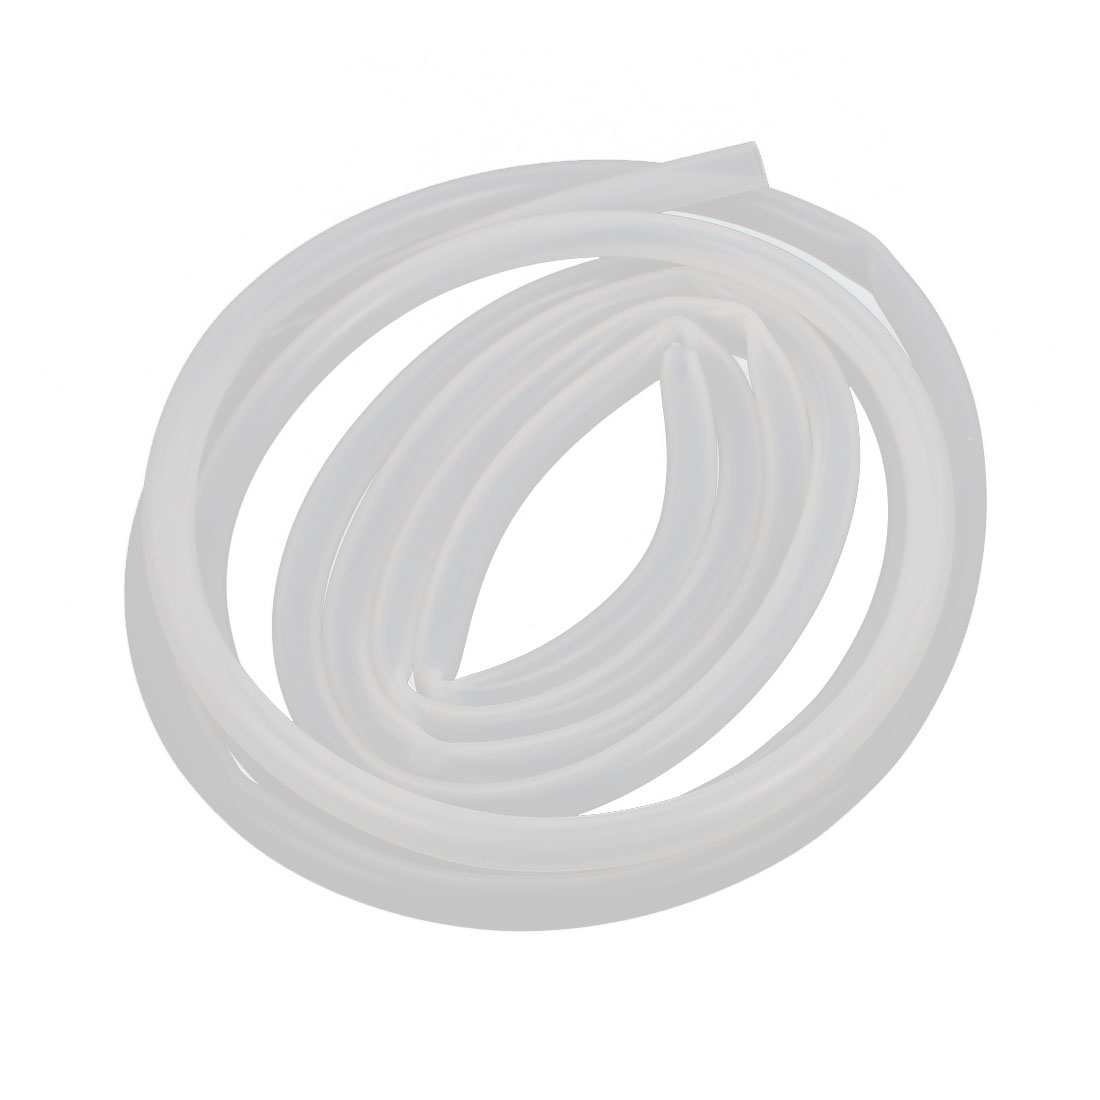 5mm x 7mm Translucent Silicone Tube DIY Hose Pipe 2 Meter Length